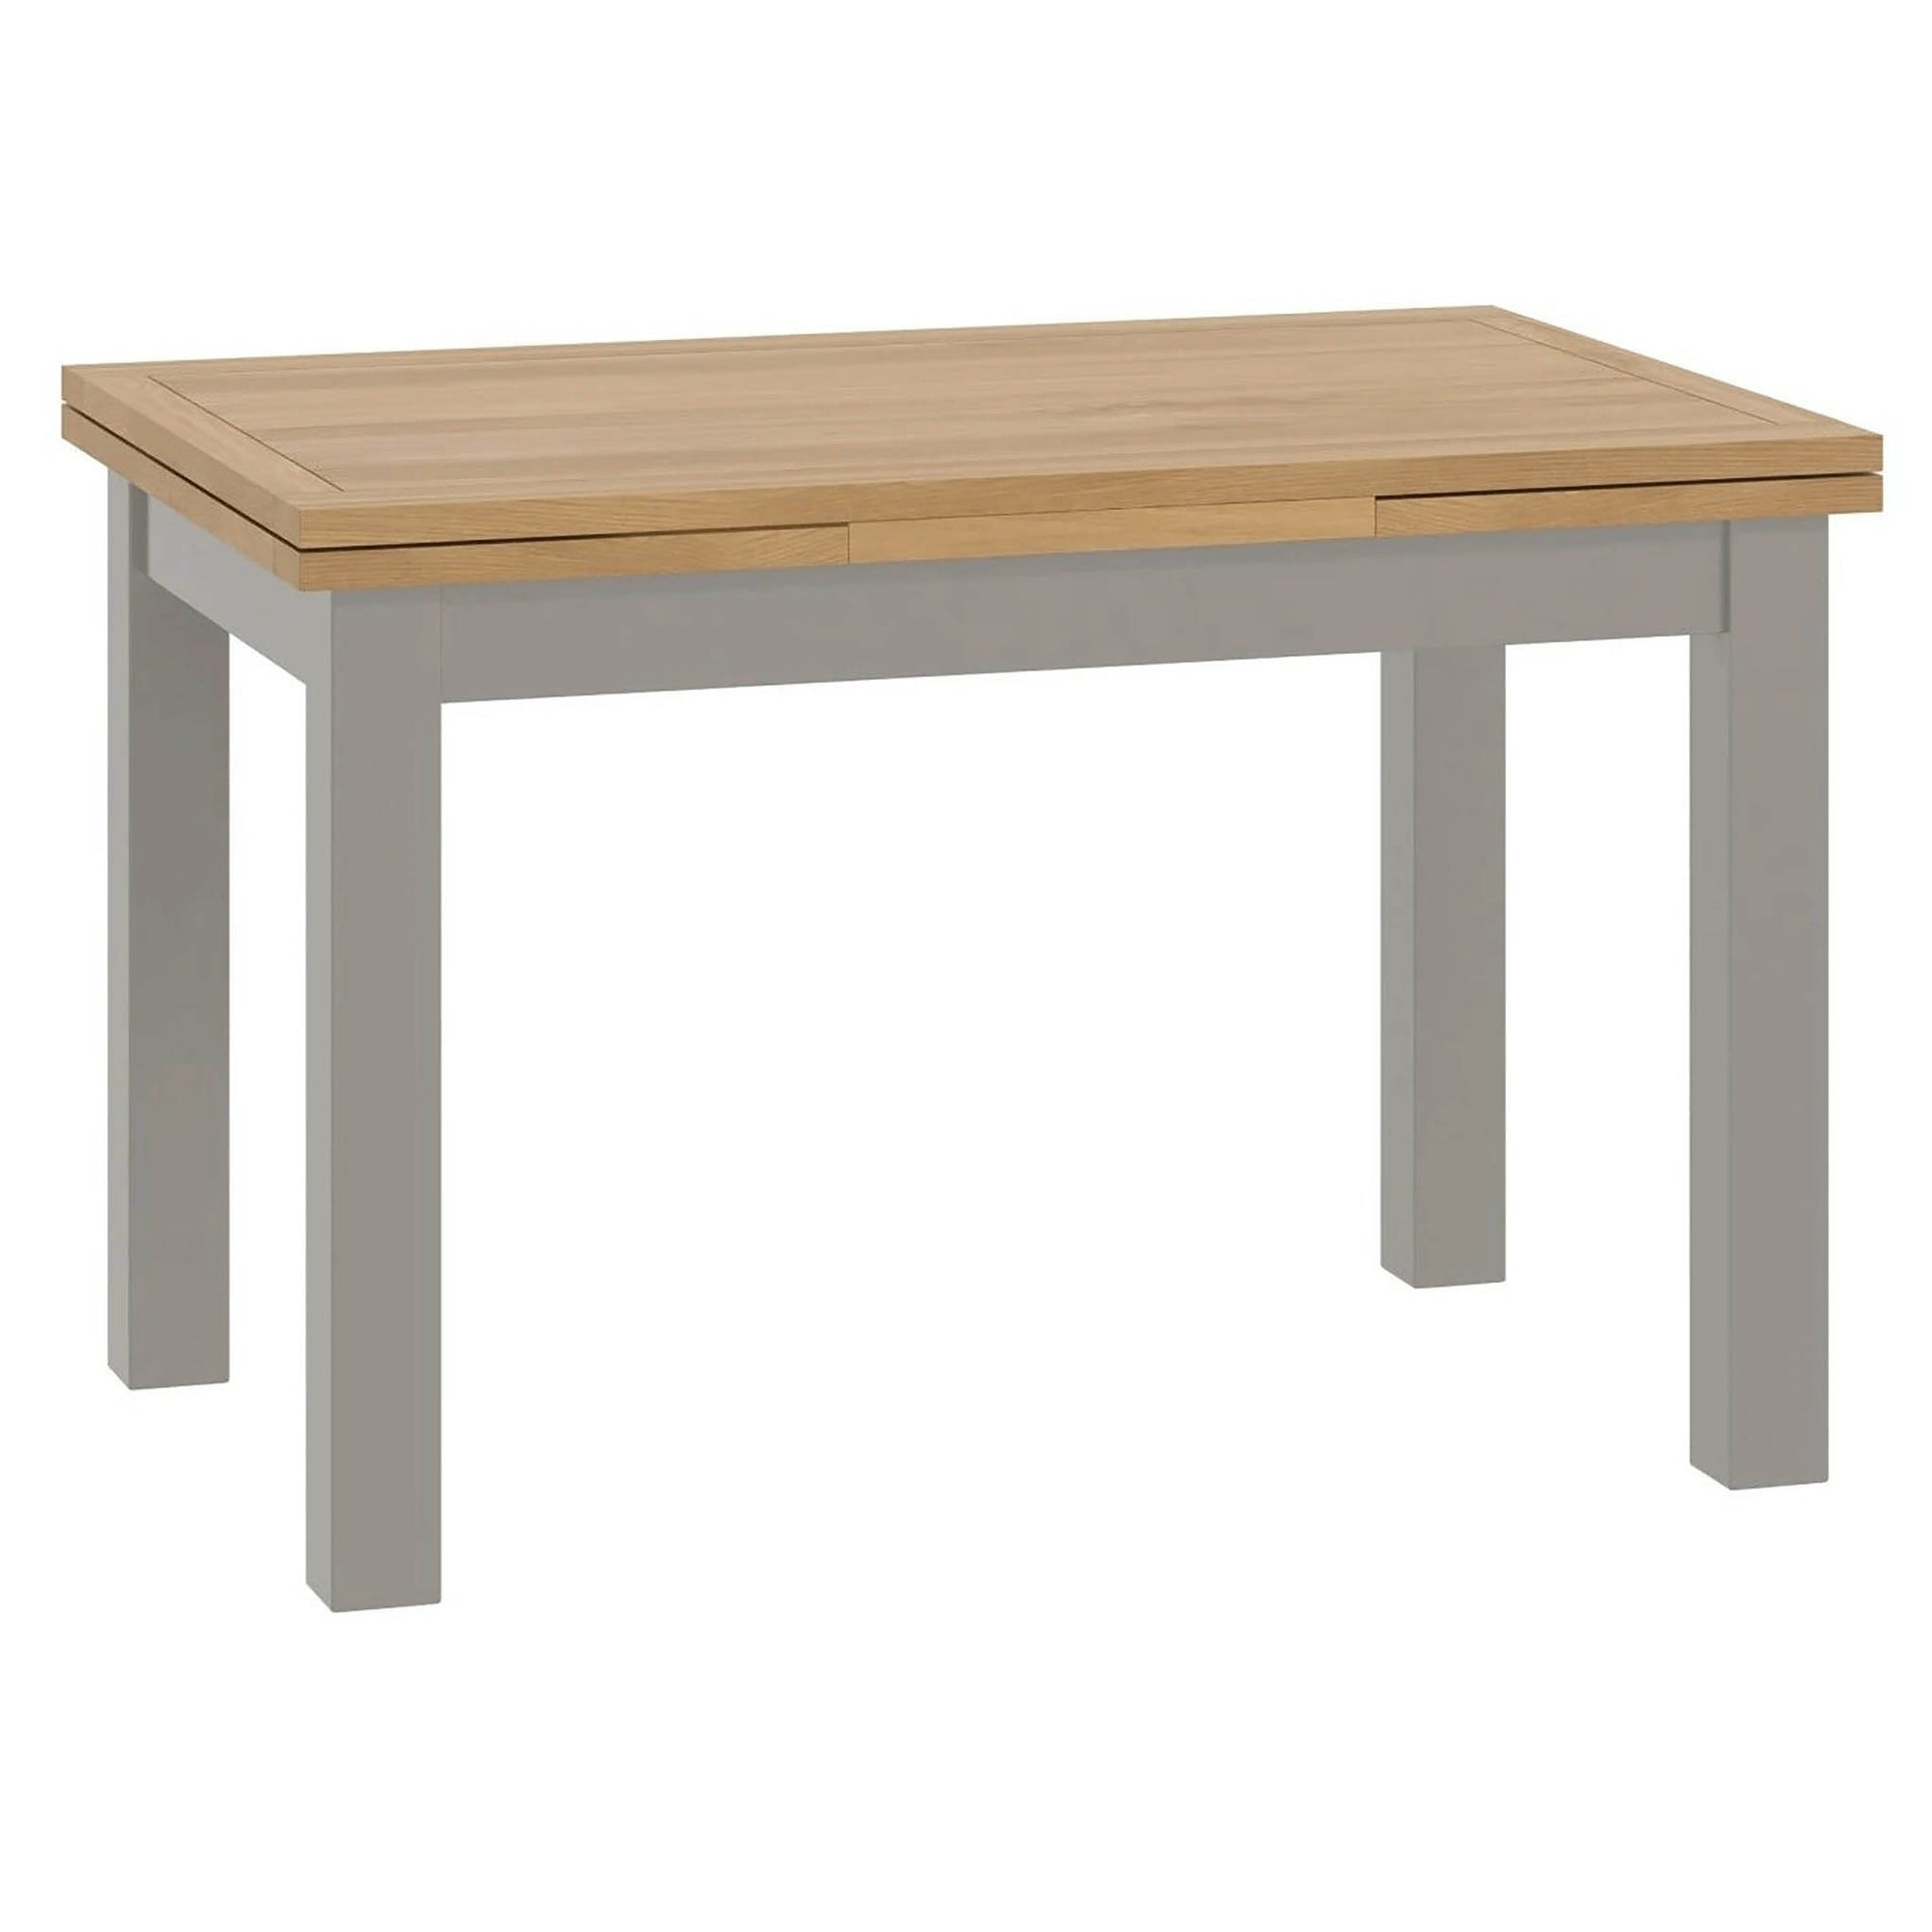 The Padstow Grey Lift top Draw Leaf Extending Dining Table with Oak Top 120-200cm from Roseland Furniture